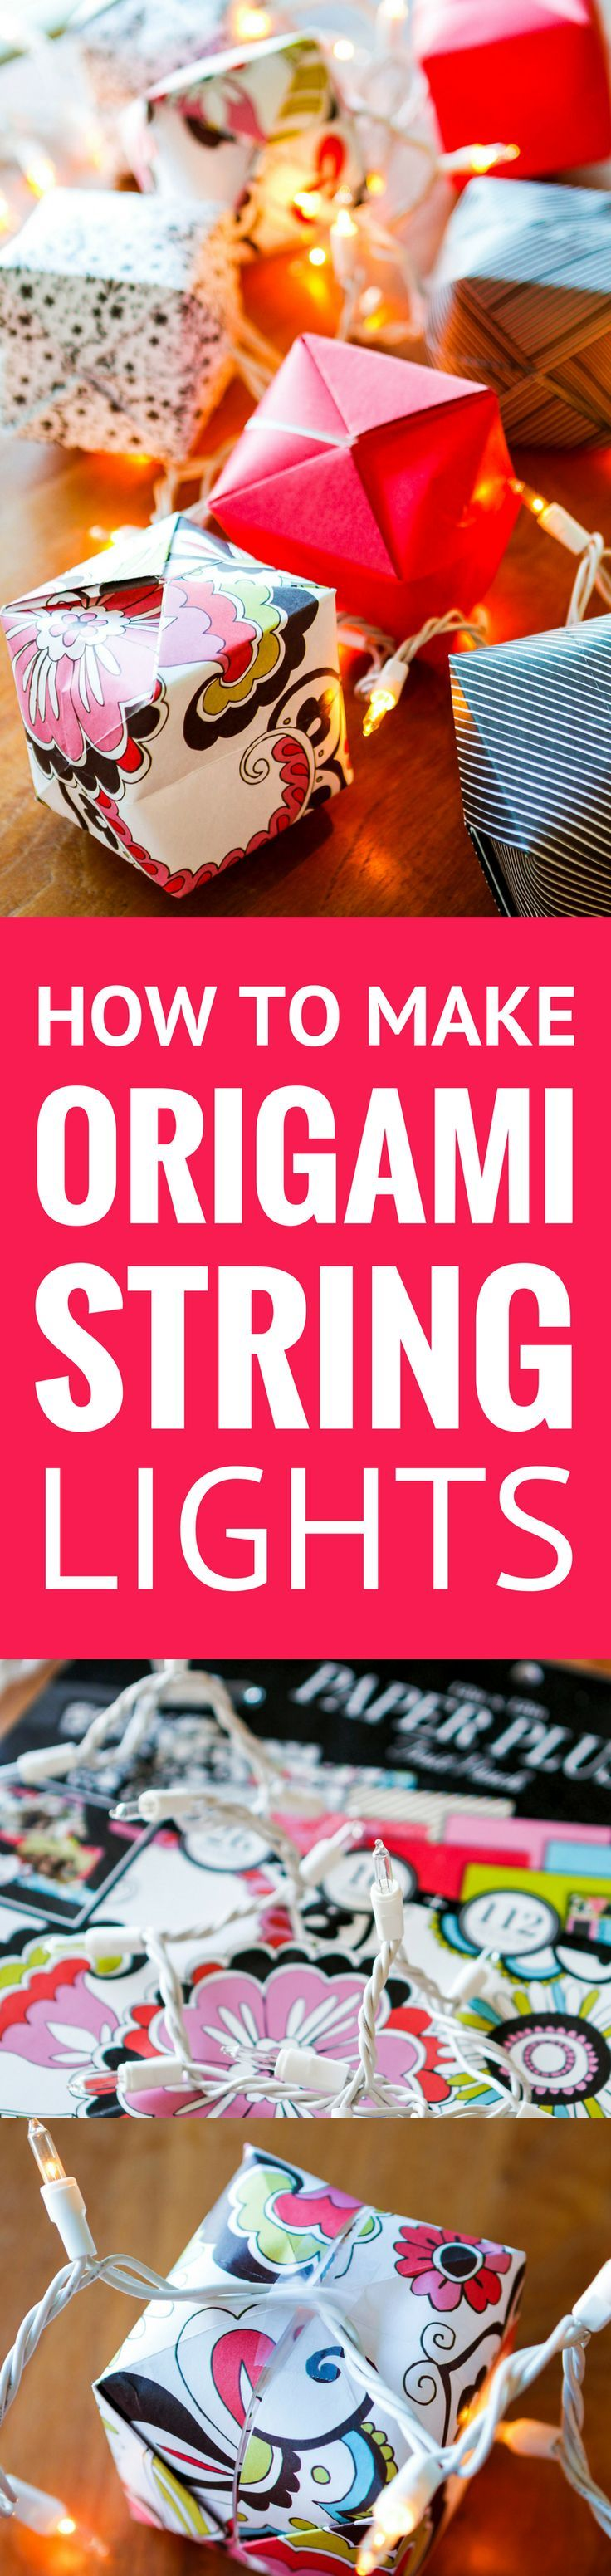 How to's : How To Make Origami Lights -- transform the classic Chinese water bomb into origami light covers to create these gorgeous origami string lights, a beautiful and festive lighting option! Not just for Chinese New Year, they're a great option for indoor or outdoor parties, weddings, baby showers, Christmas, you name it... | origami lights diy | origami lights shade | origami lights covers | origami lights awesome | origami lights awesome #chinesenewyear #papercrafts #origami #paperart